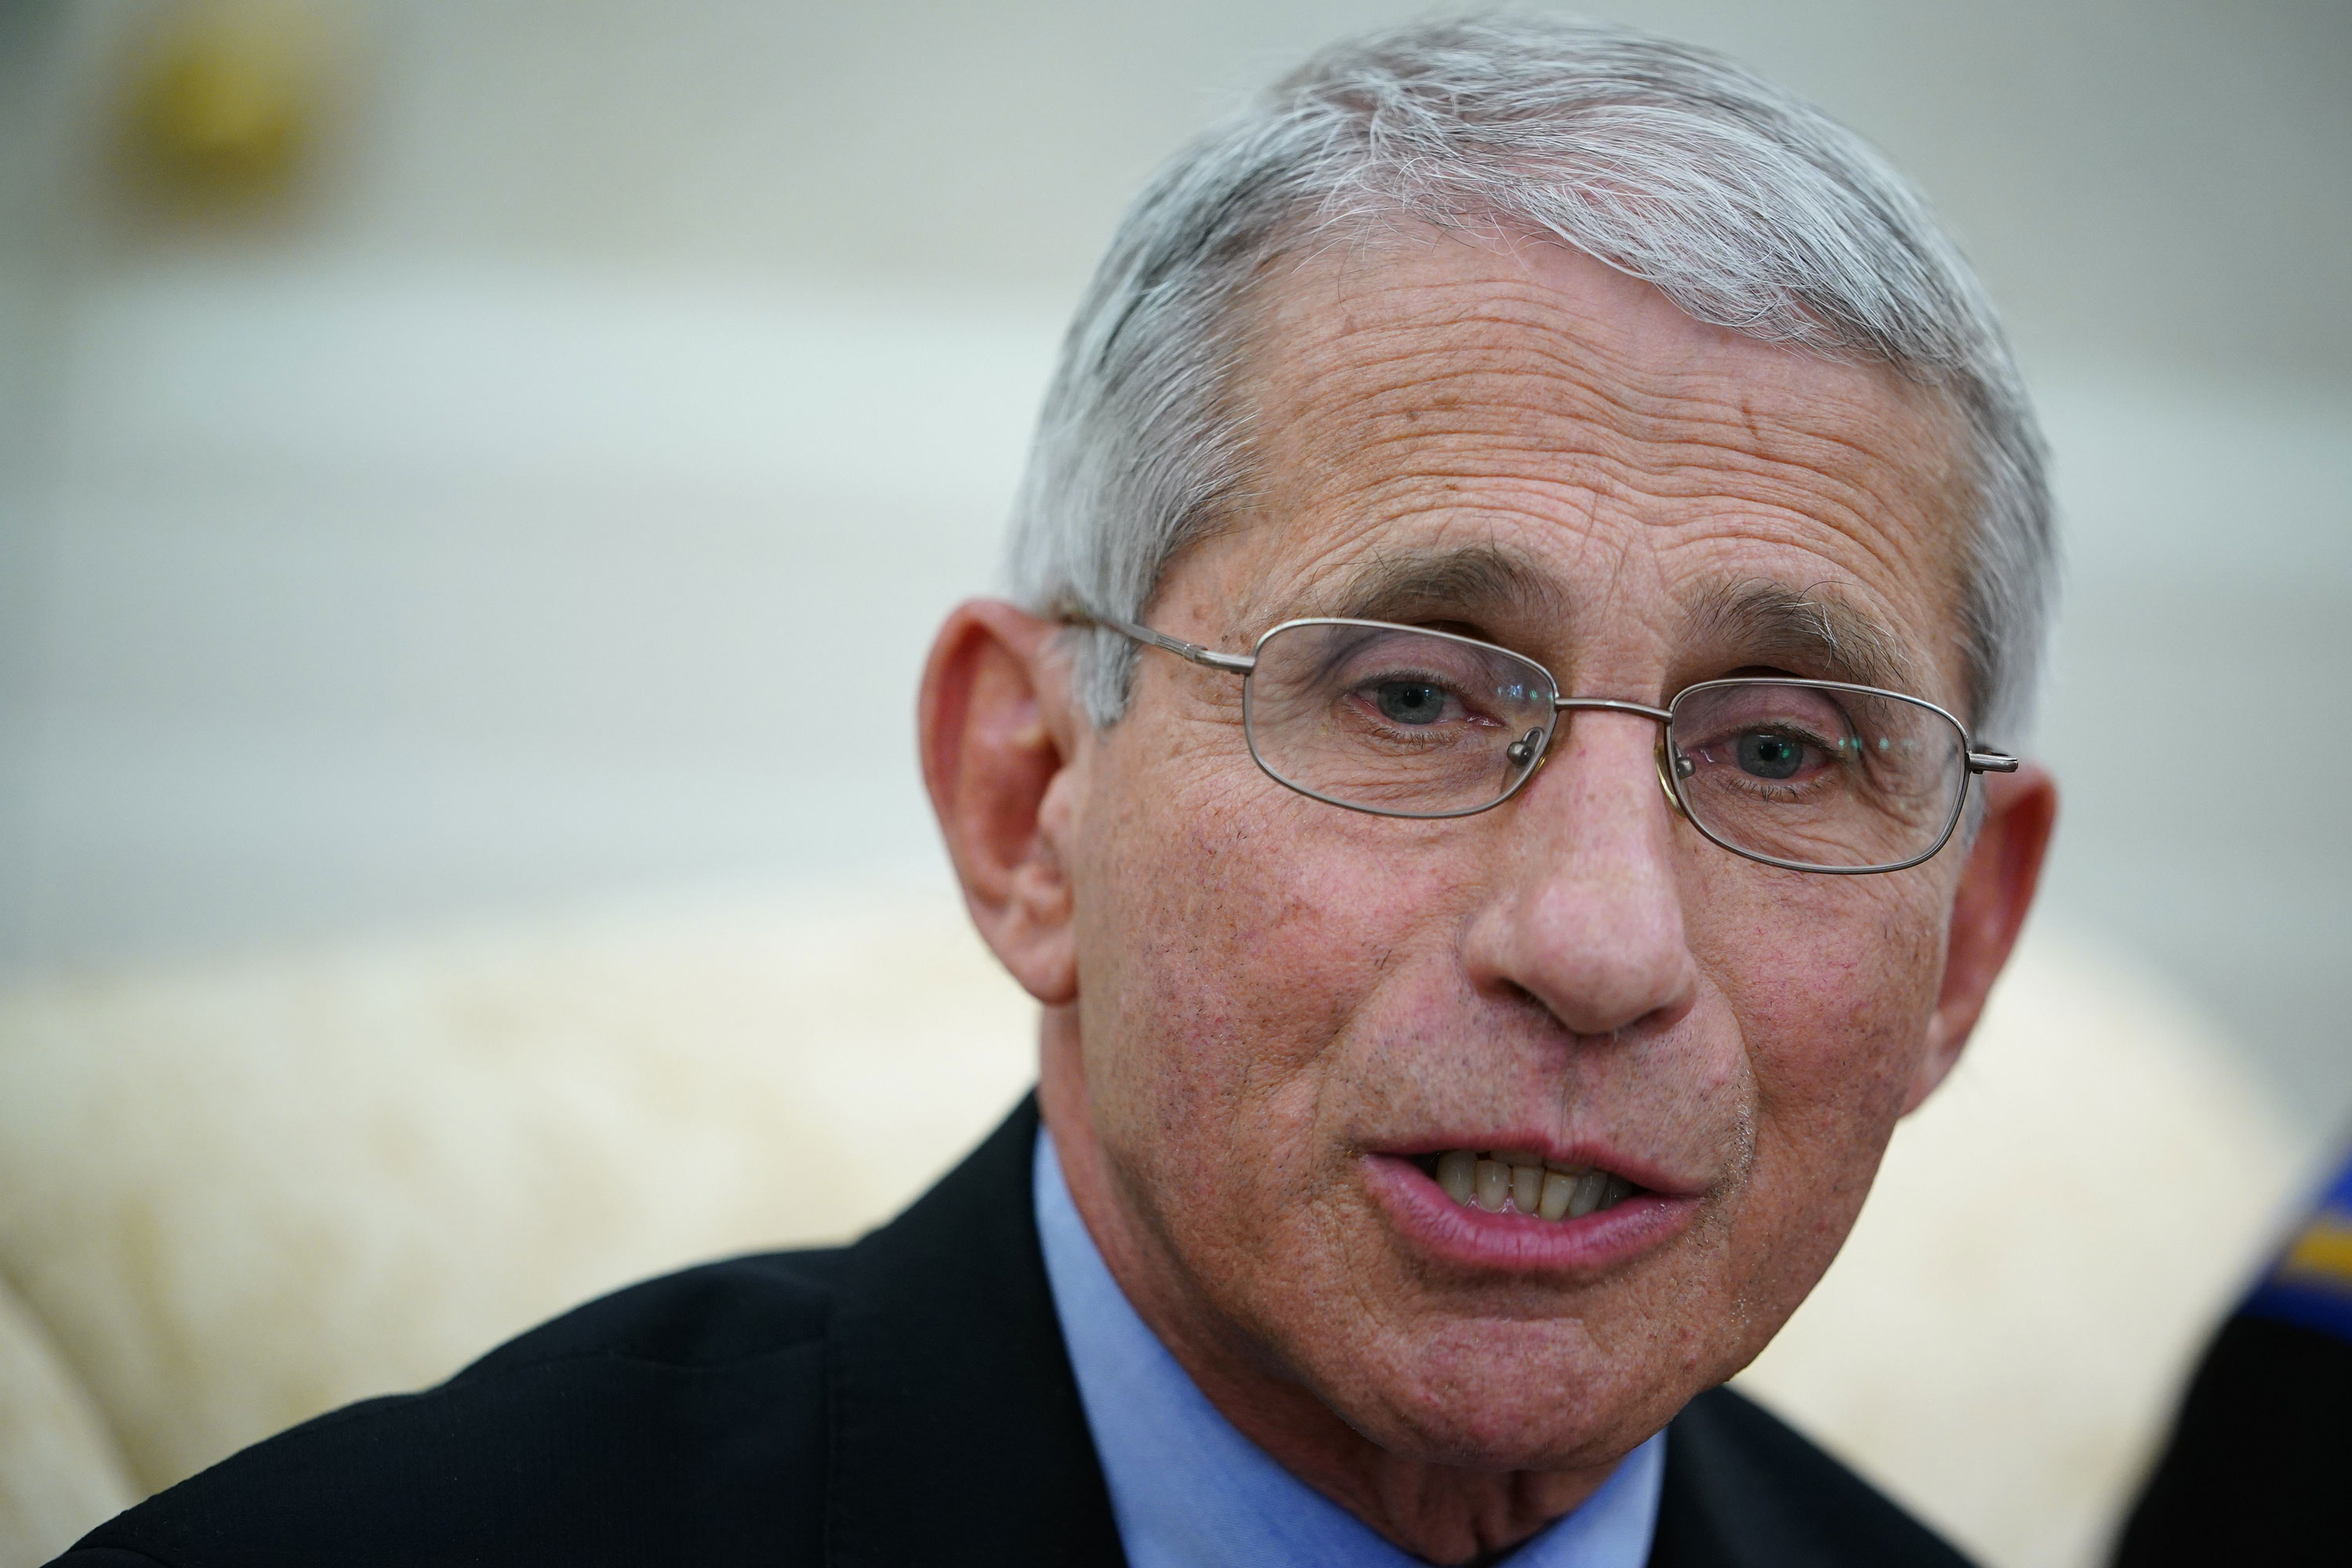 Dr. Anthony Fauci , director of the National Institute of Allergy and Infectious Diseases speaks during a meeting in the Oval Office of the White House in Washington on April 29.